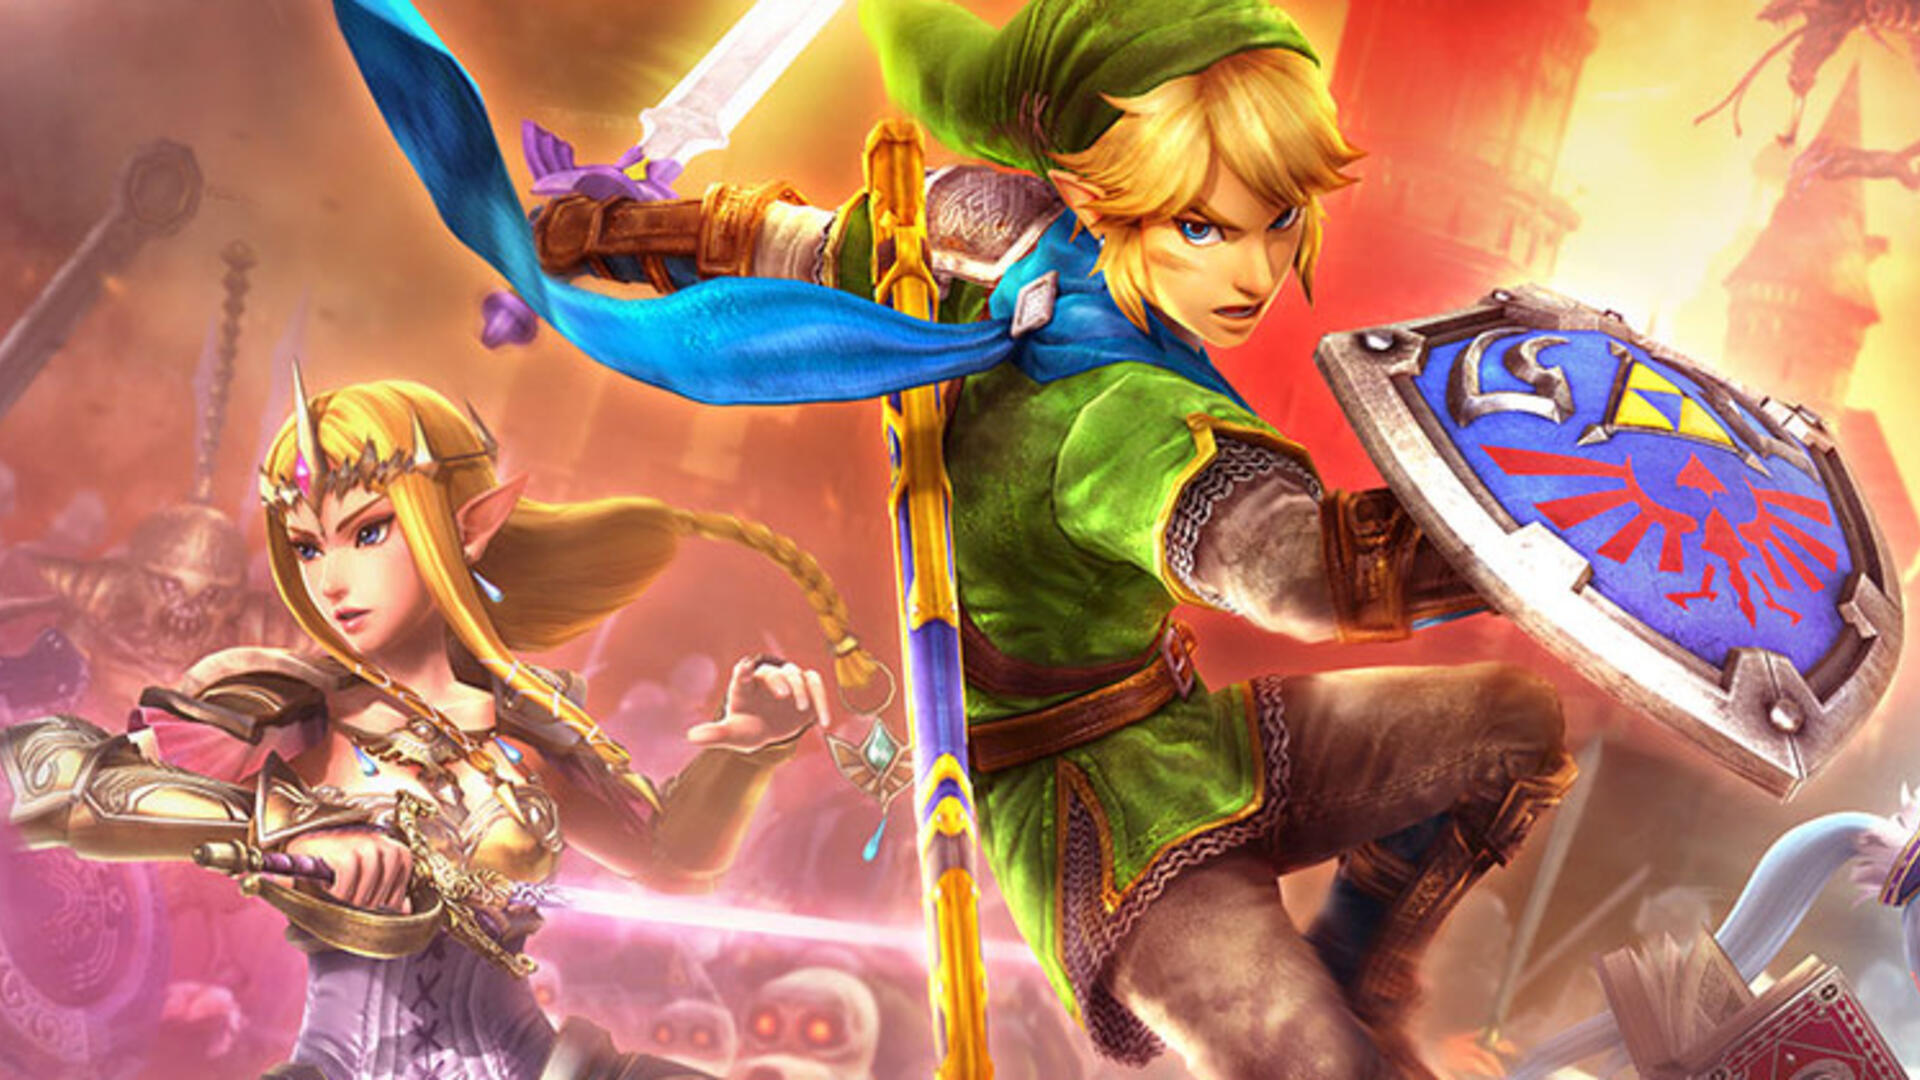 How Shigeru Miyamoto Changed the Course of Hyrule Warriors